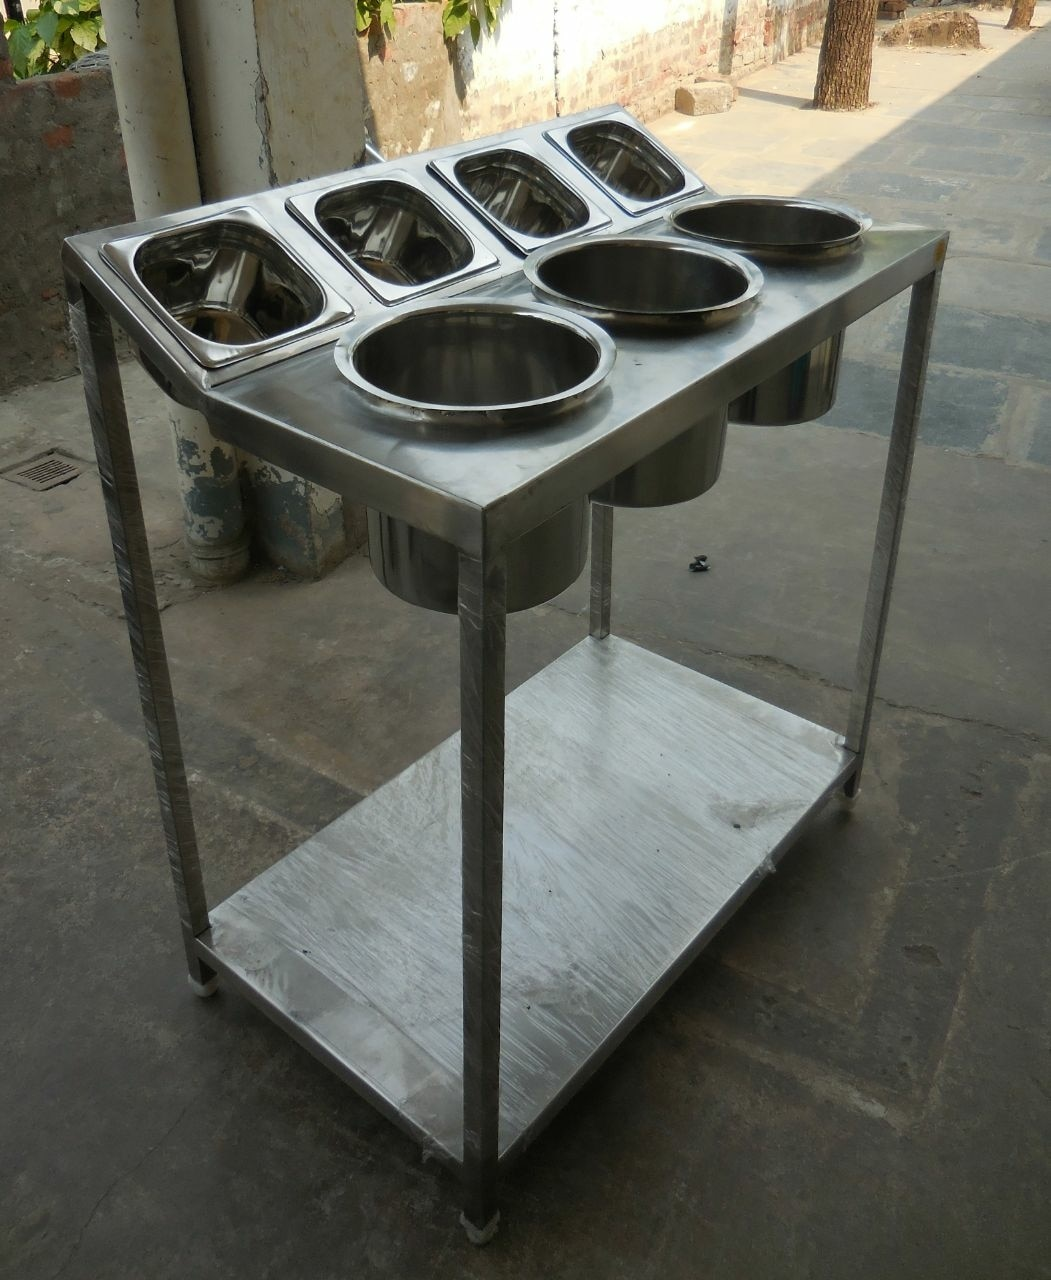 Stainless Steel Dosa, Idly Batter Table With Masala Containers For Restaurants, Hotels , College Canteens , Industrial Canteens, Commercial Kitchen Equipment Manufacturer In Chennai